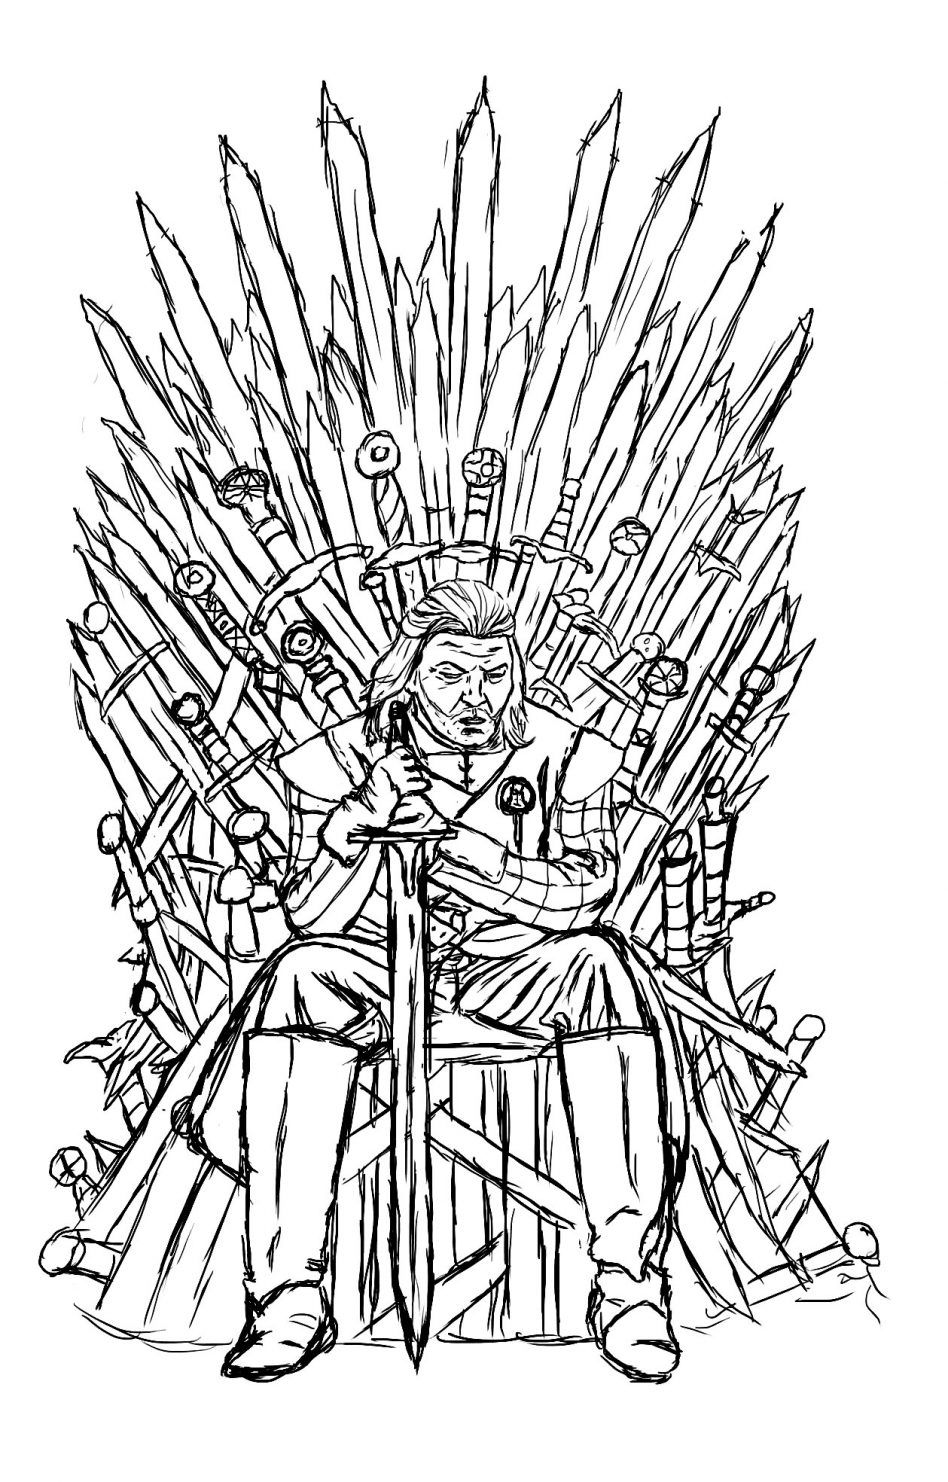 - Free-coloring-page-c3a2c2abcoloring-adult-game-of-throne-ned